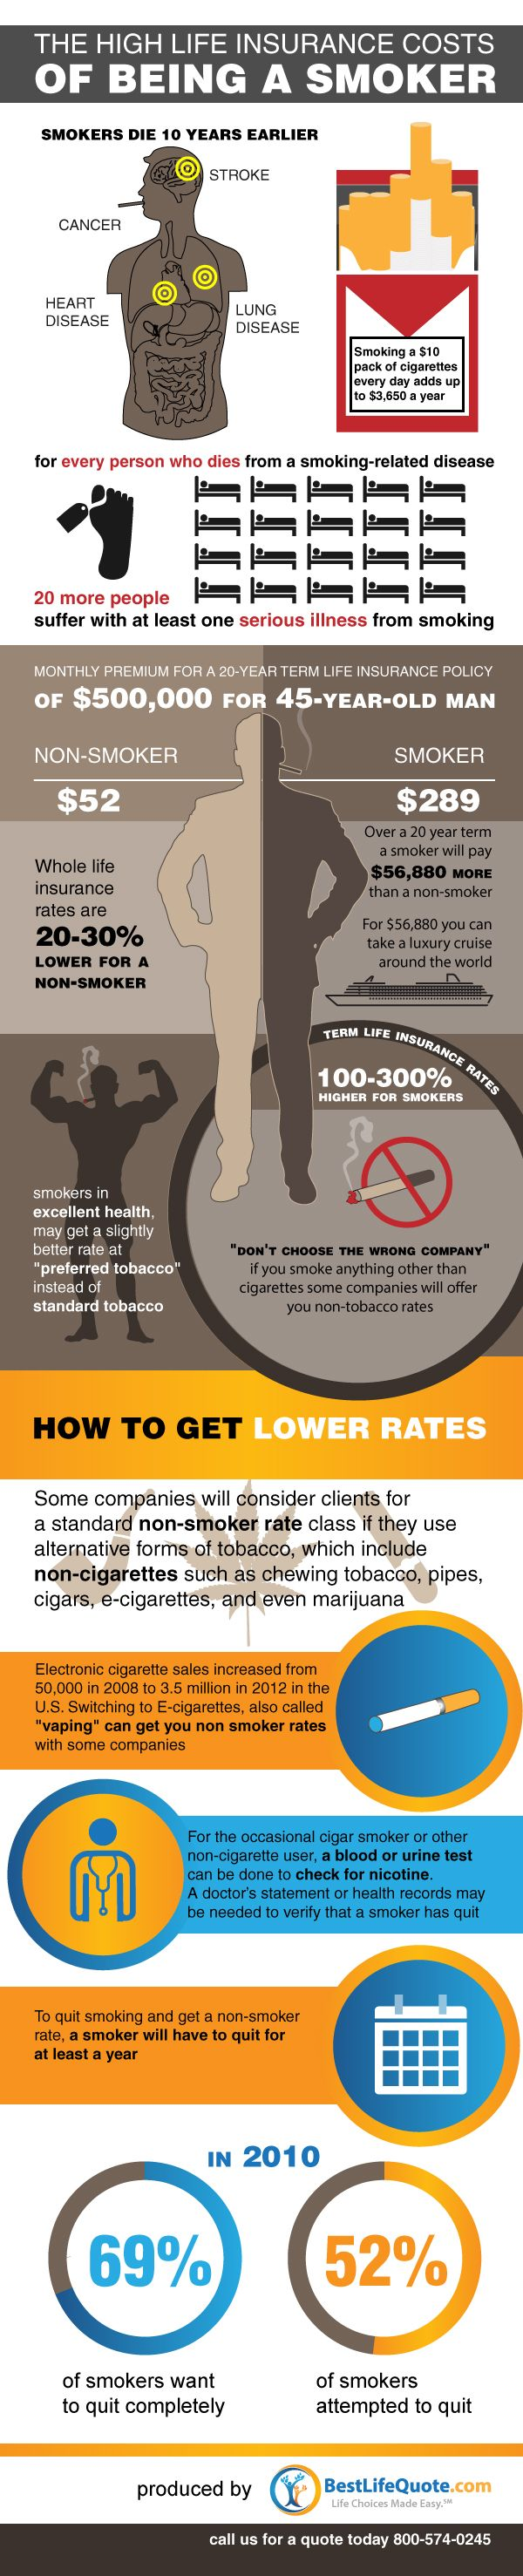 Life Insurance for Smokers Infographic - Best Life Quote | #infographic #life #insurance #education #smokers